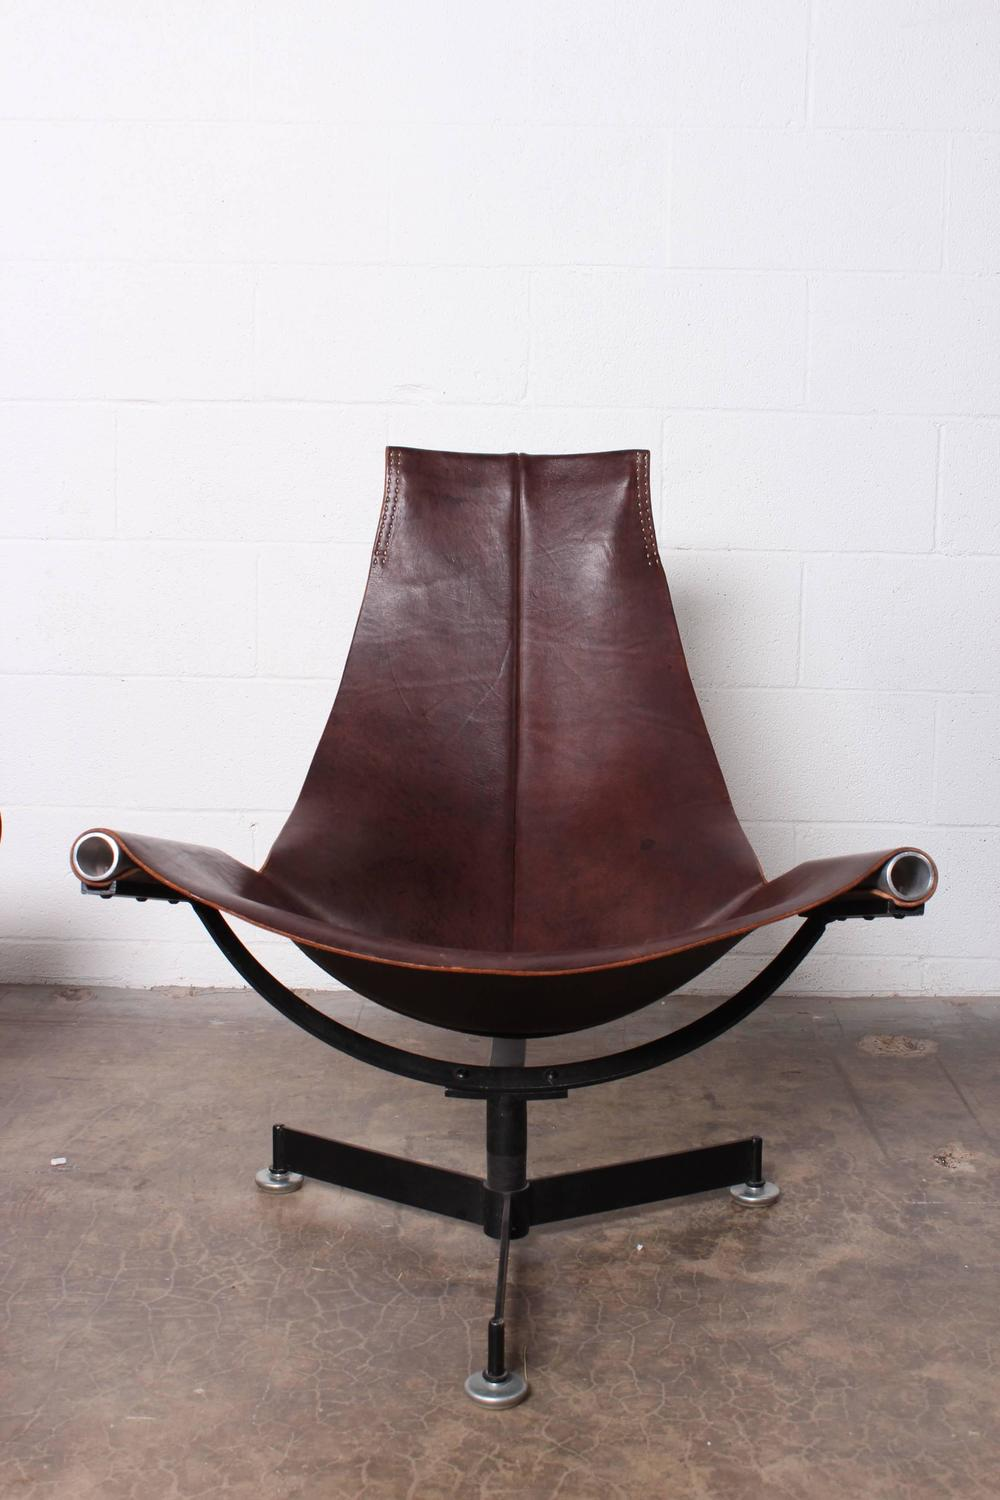 Leather Lounge Chair And Ottoman By Max Gottschalk At 1stdibs